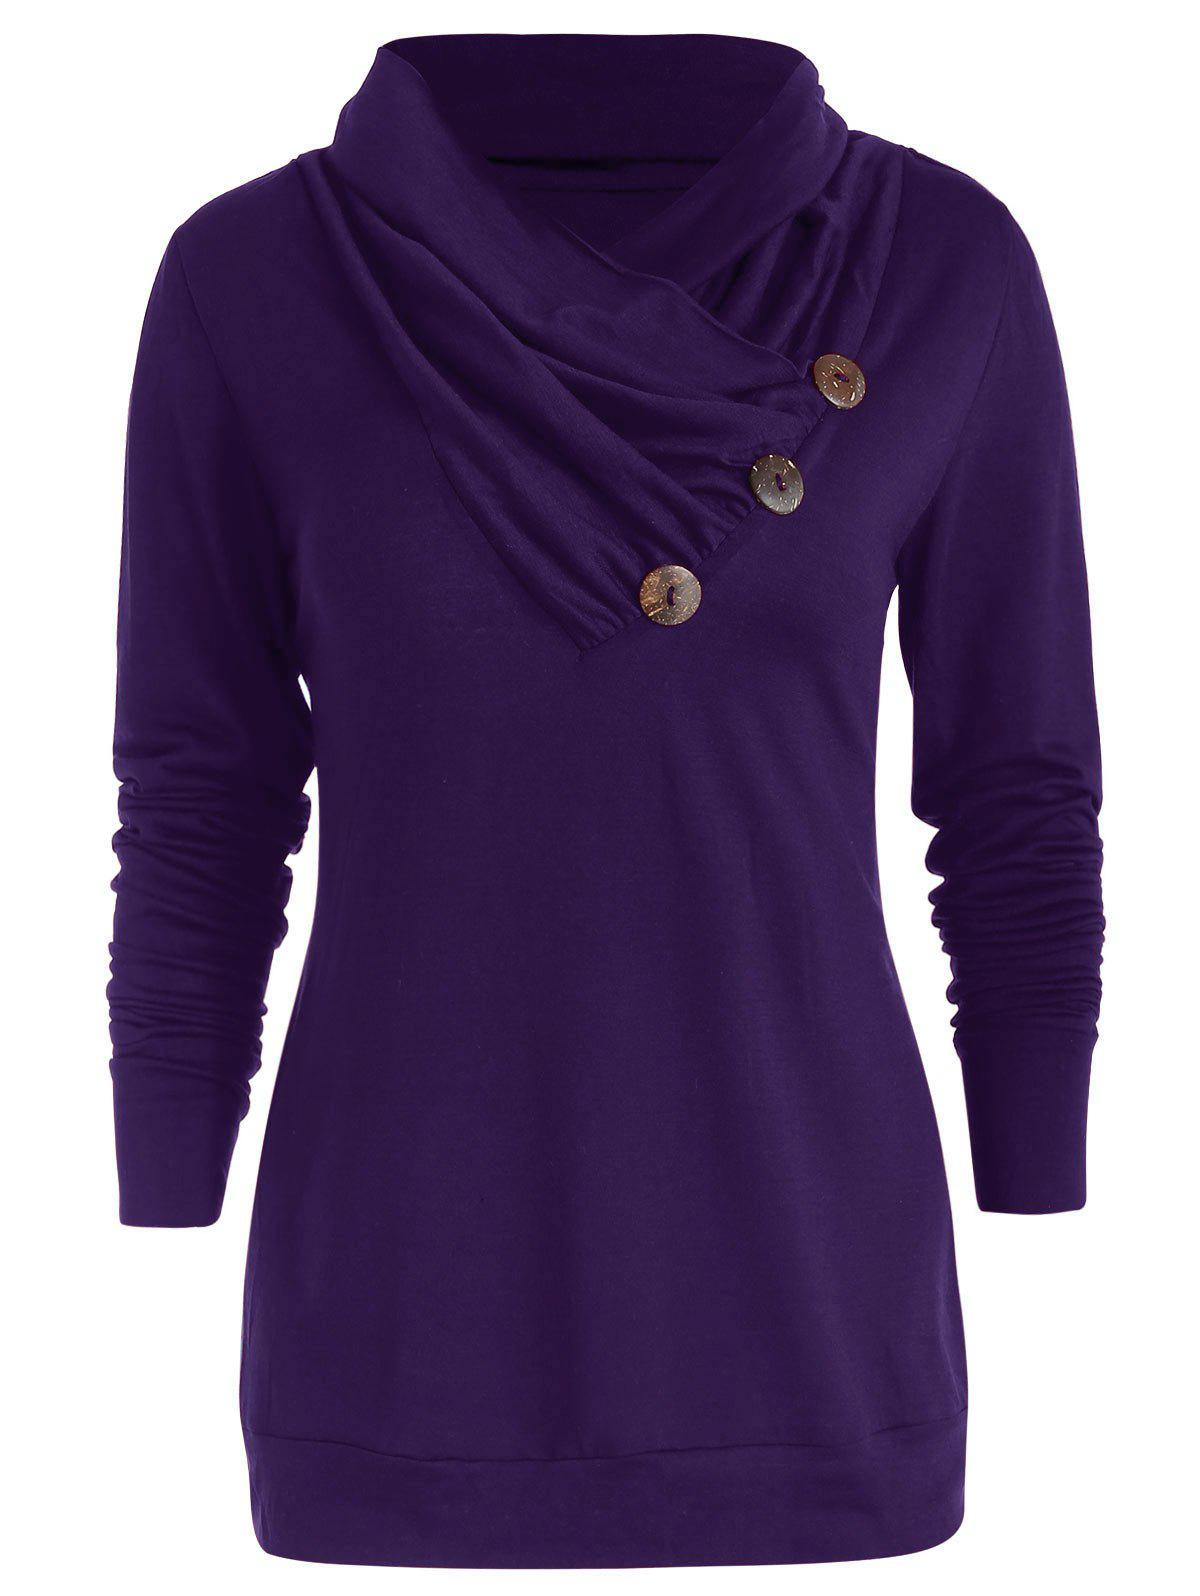 Chic Cowl Neck Button Embellished T Shirt